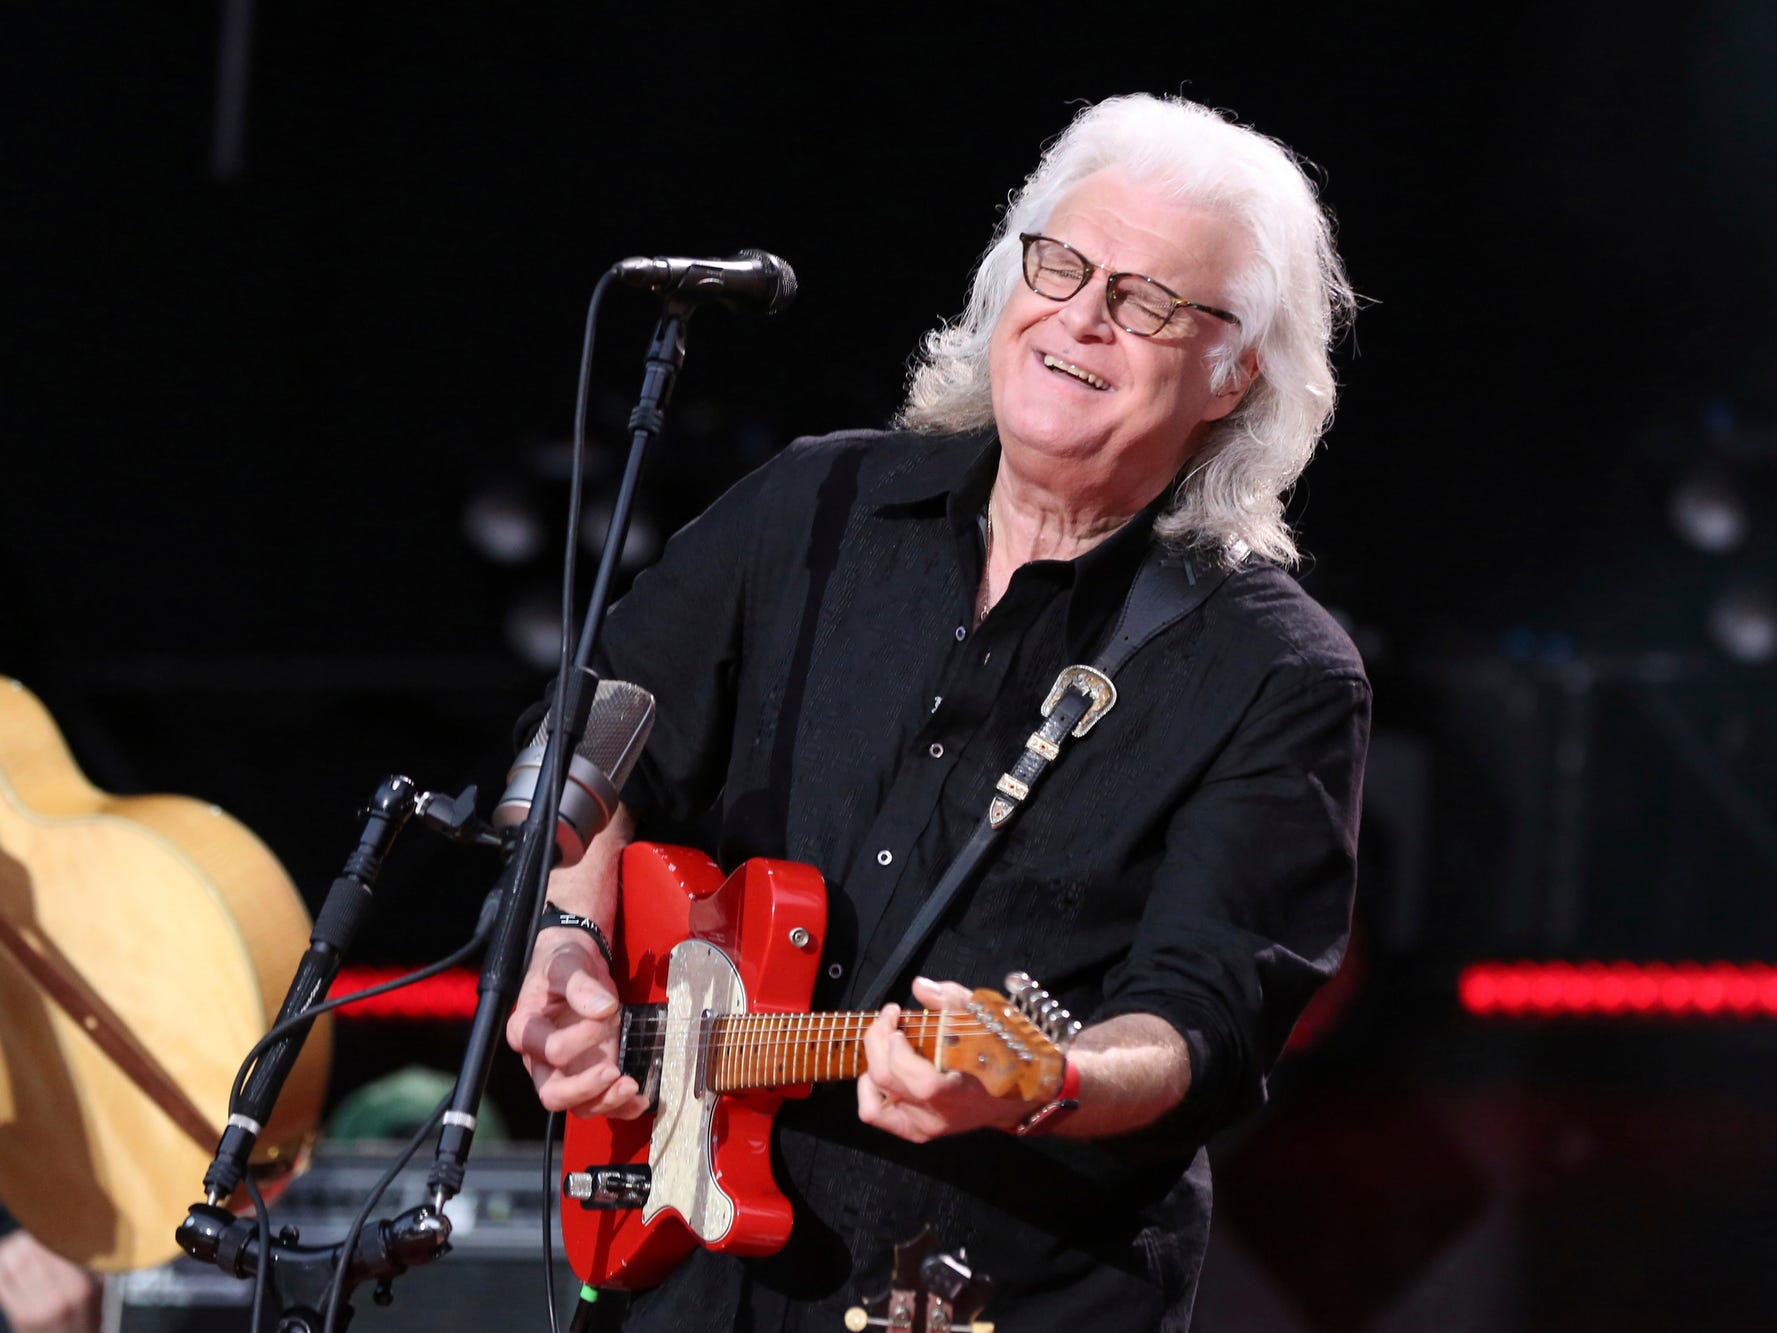 OCT. 11